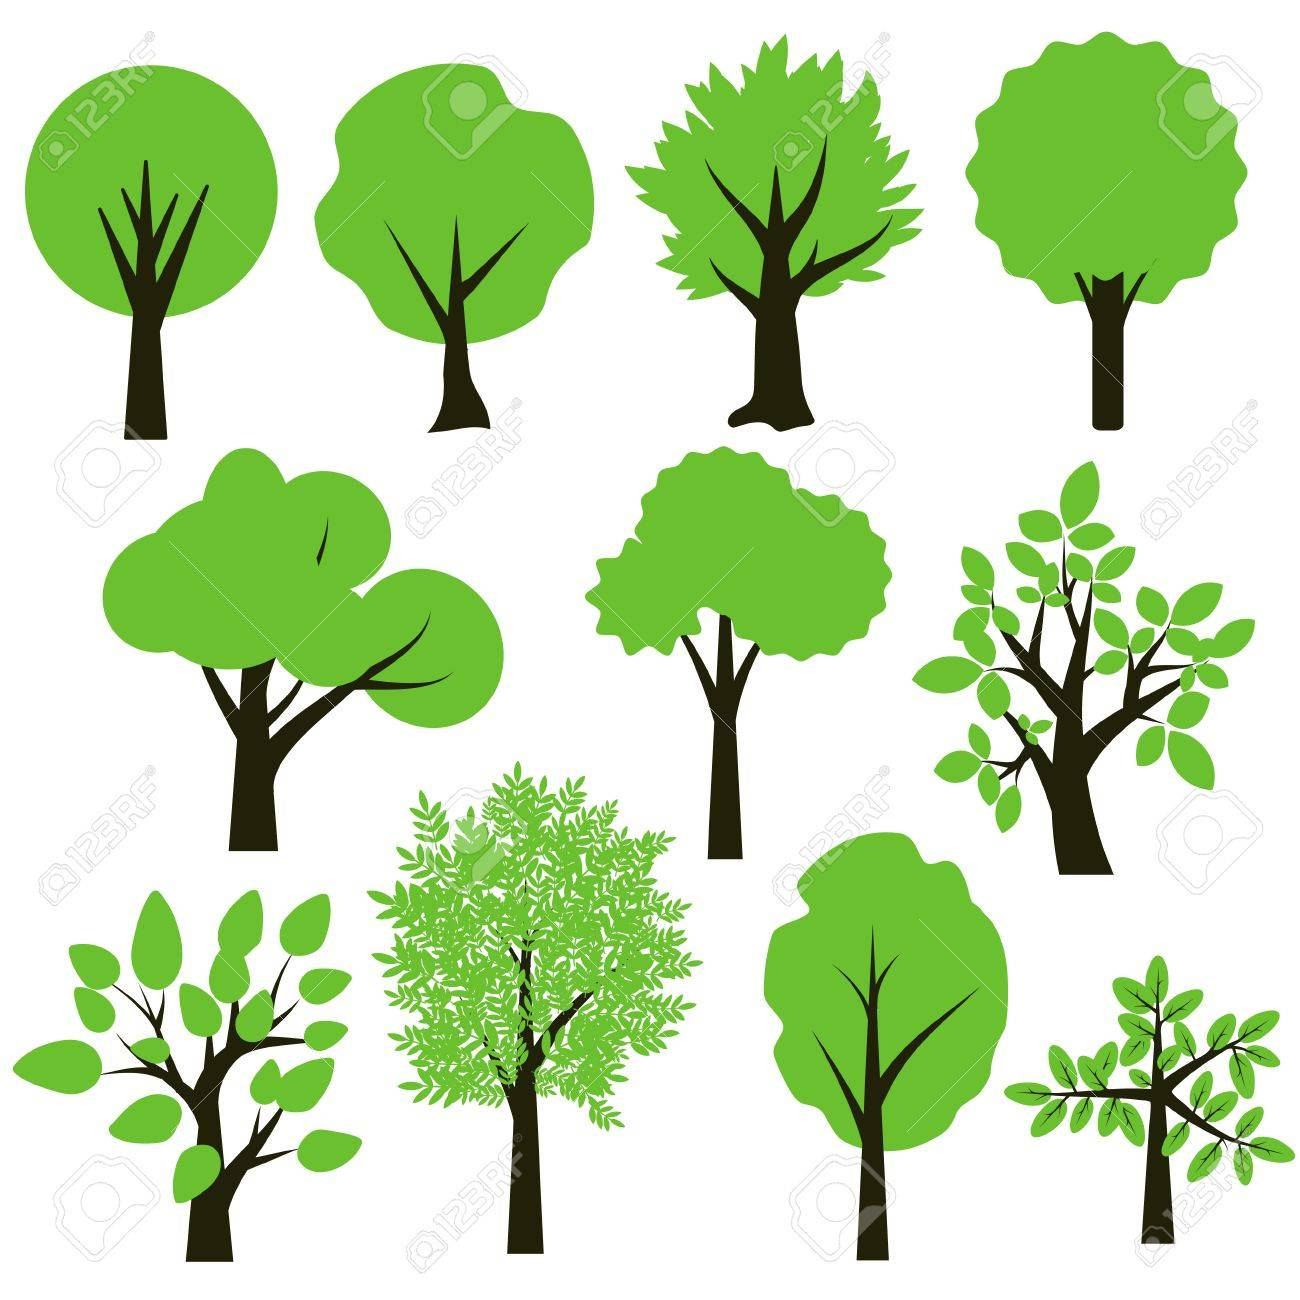 trees simple green and black set royalty free cliparts vectors and rh 123rf com vector trees illustrator vector trees top view